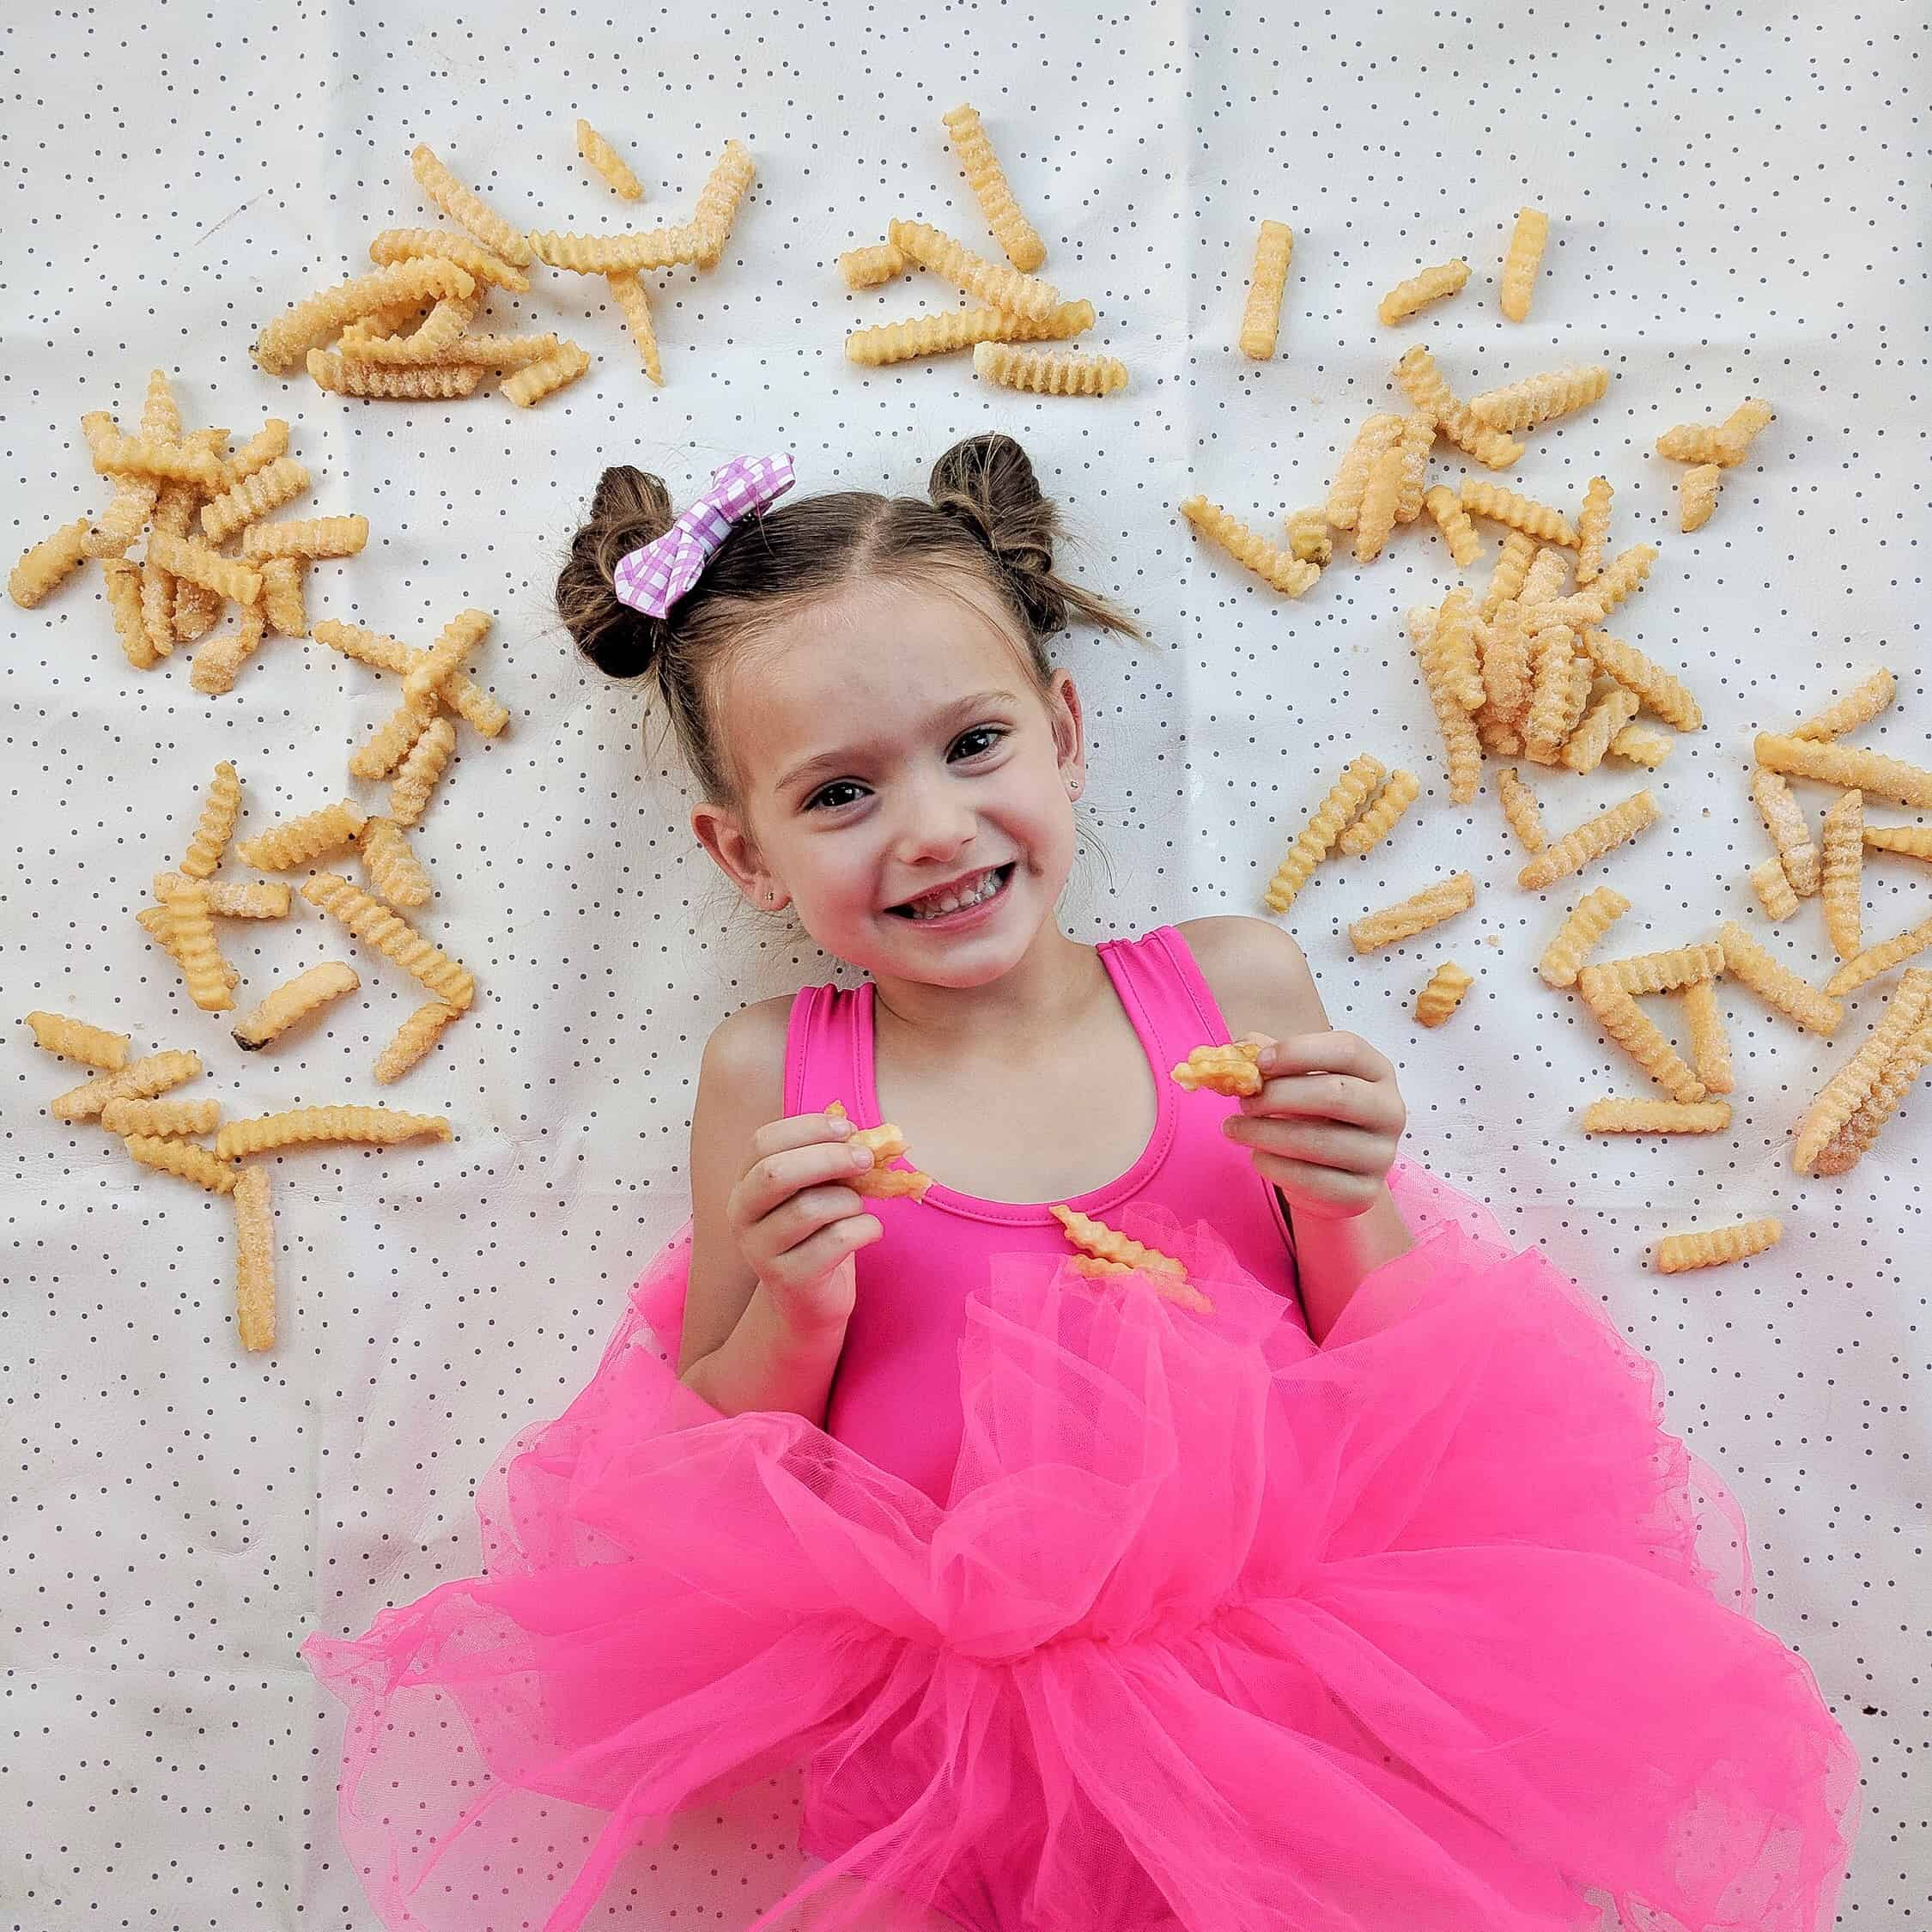 little girl in pink tutu surrounded by French fry